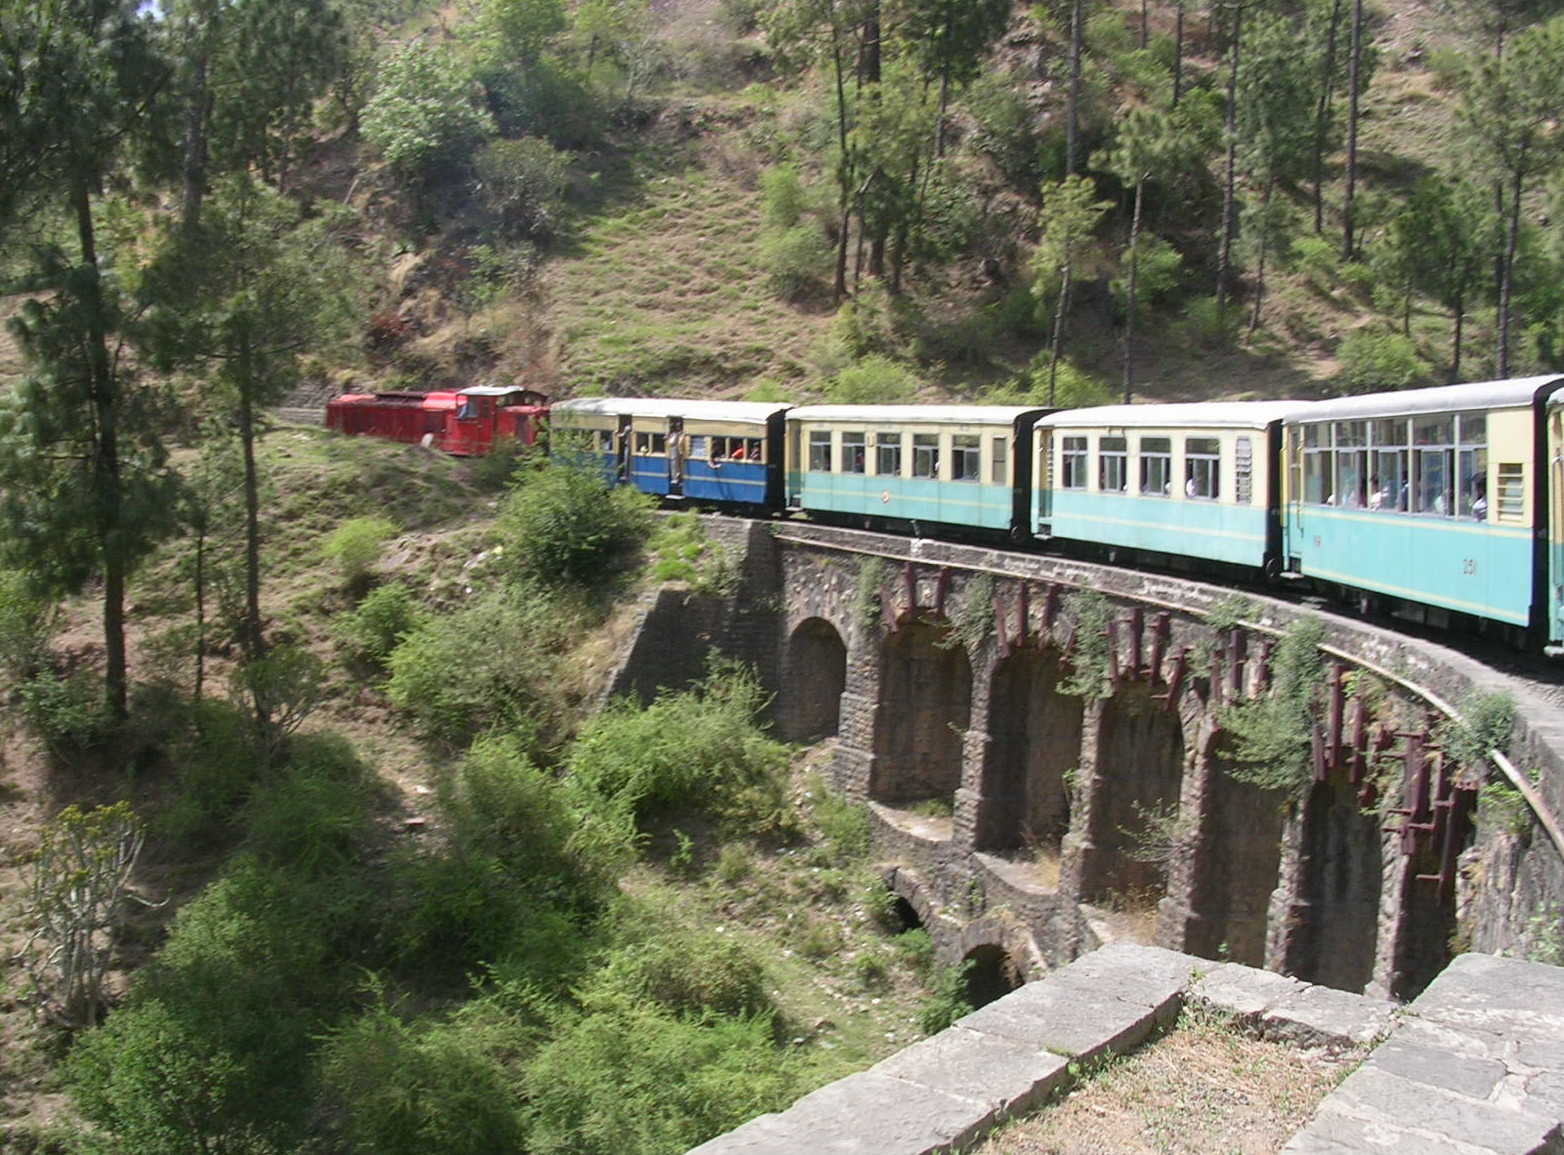 The Toy Train to Shimla